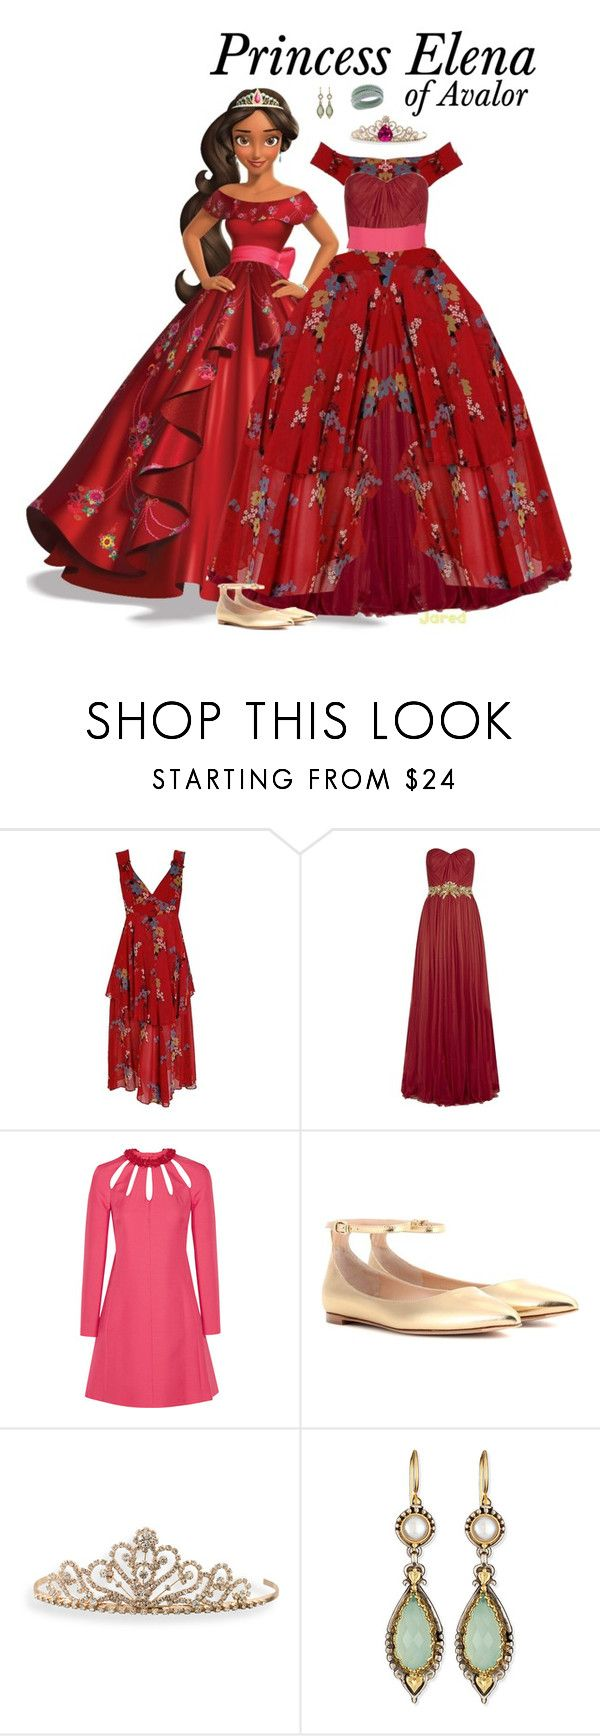 """""""Princess Elena of Avalor - Ballgown"""" by supercalifragilistica ❤ liked on Polyvore featuring Disney, Marchesa, Valentino, Gianvito Rossi, BillyTheTree and Konstantino"""